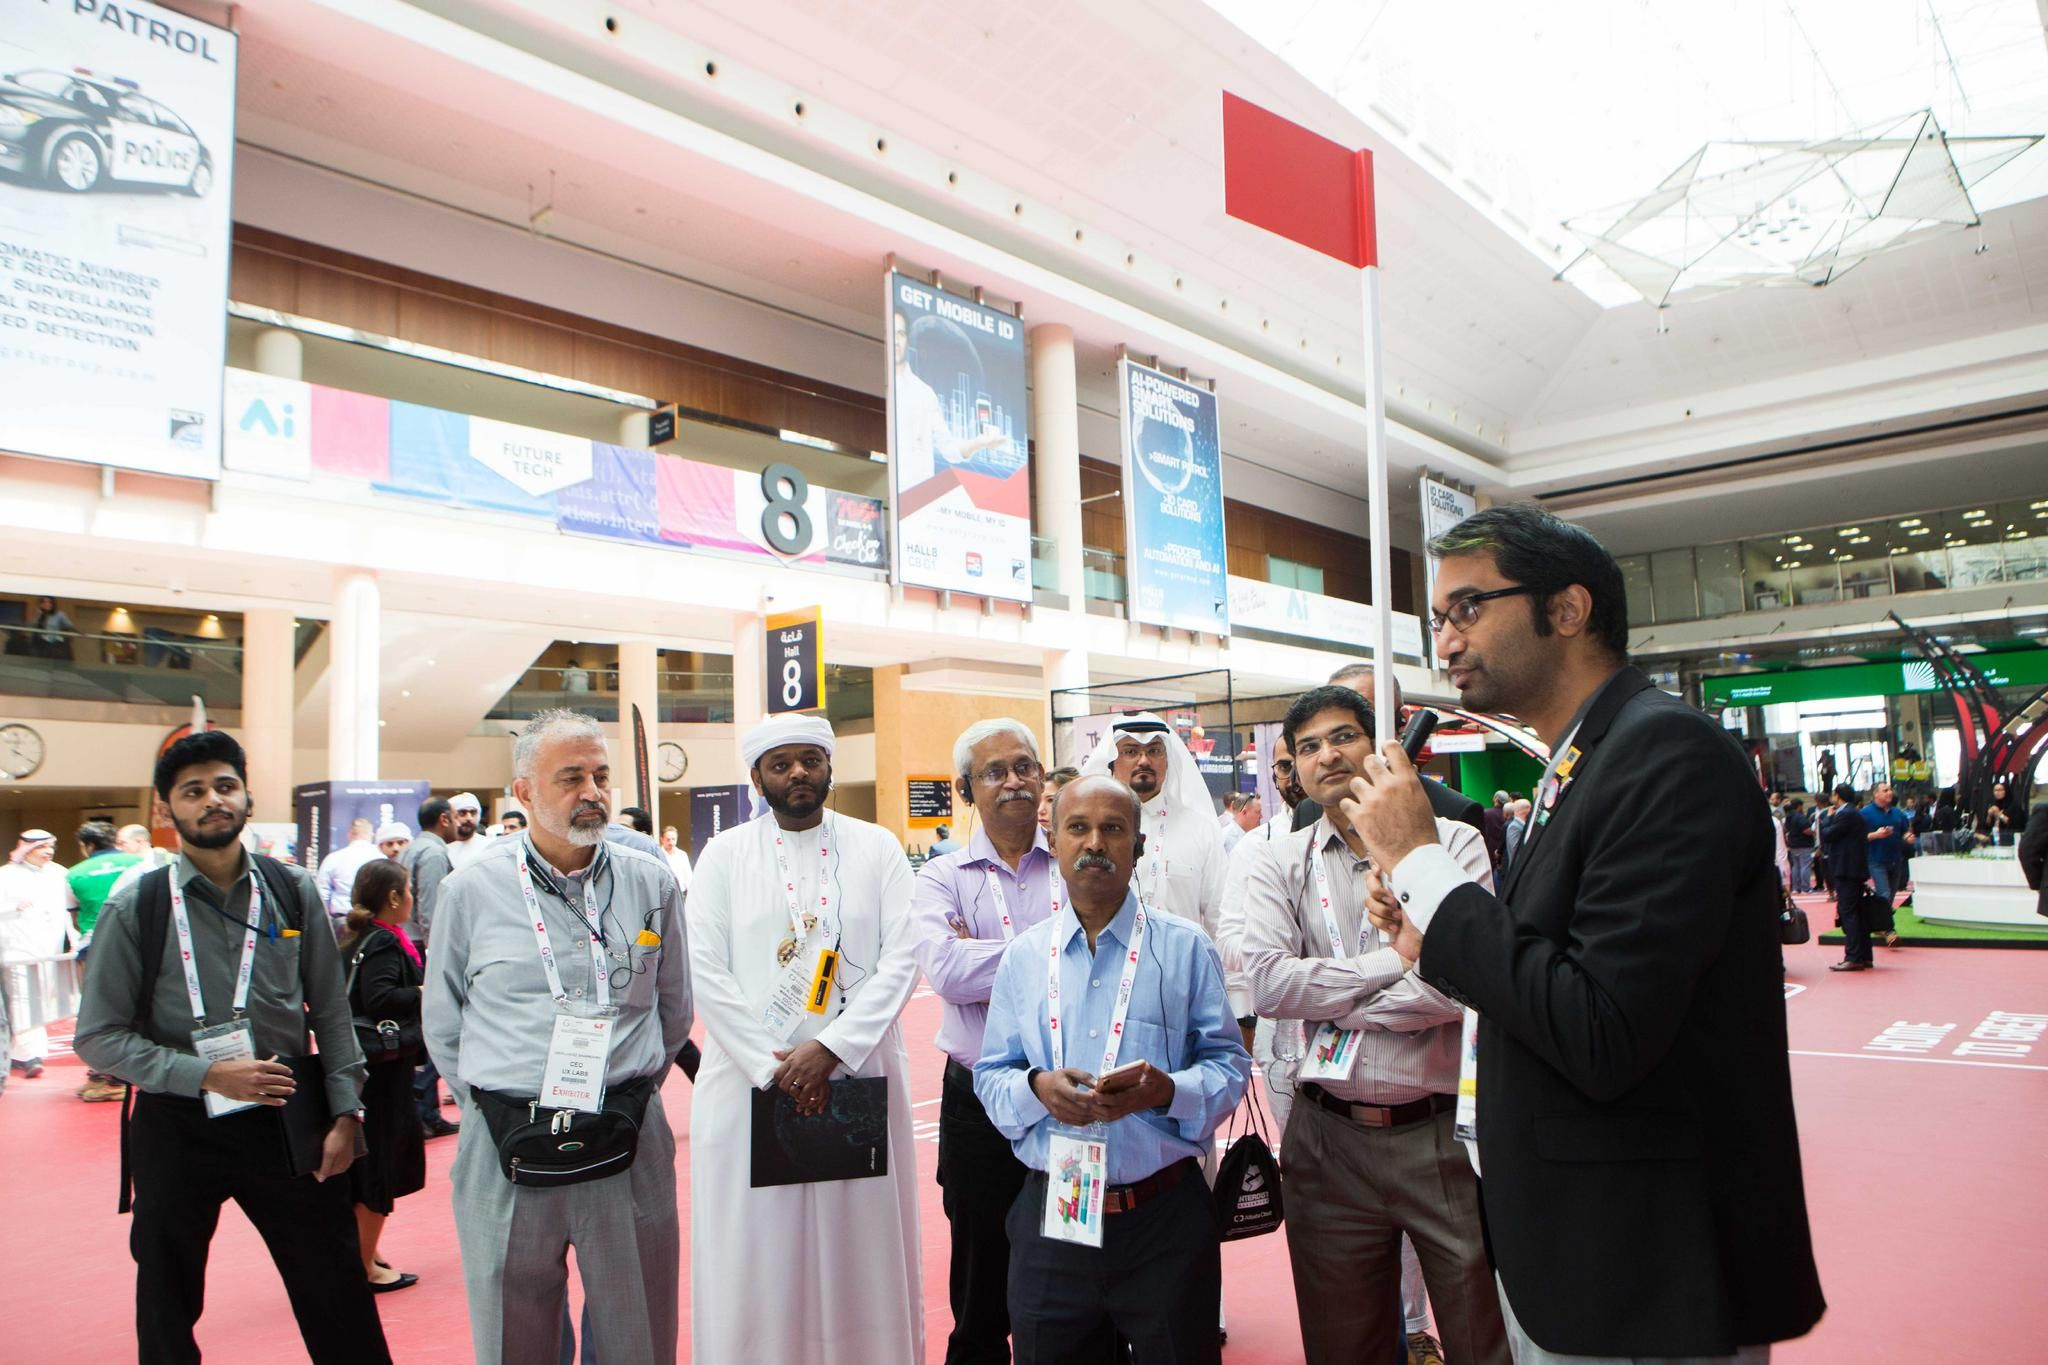 GITEX guided tours